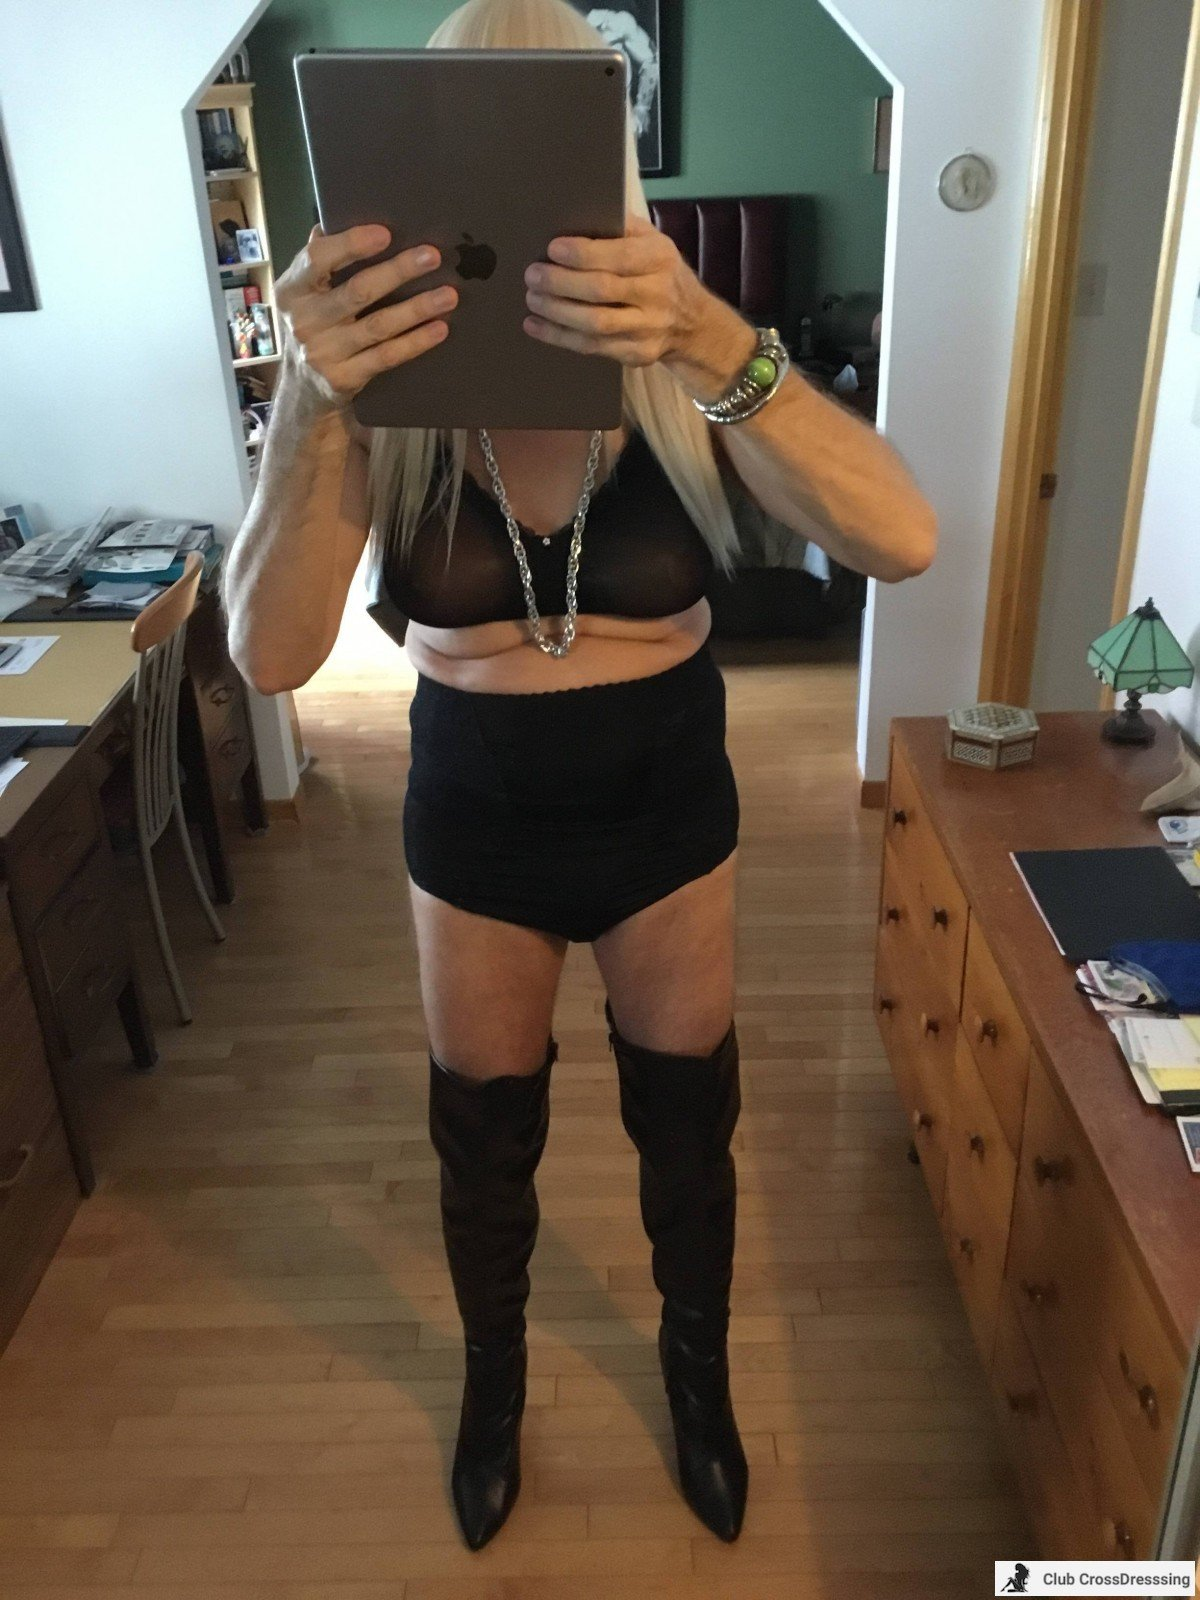 I bought the Blond wig and Boots this Morning, having fun trying them on!!!